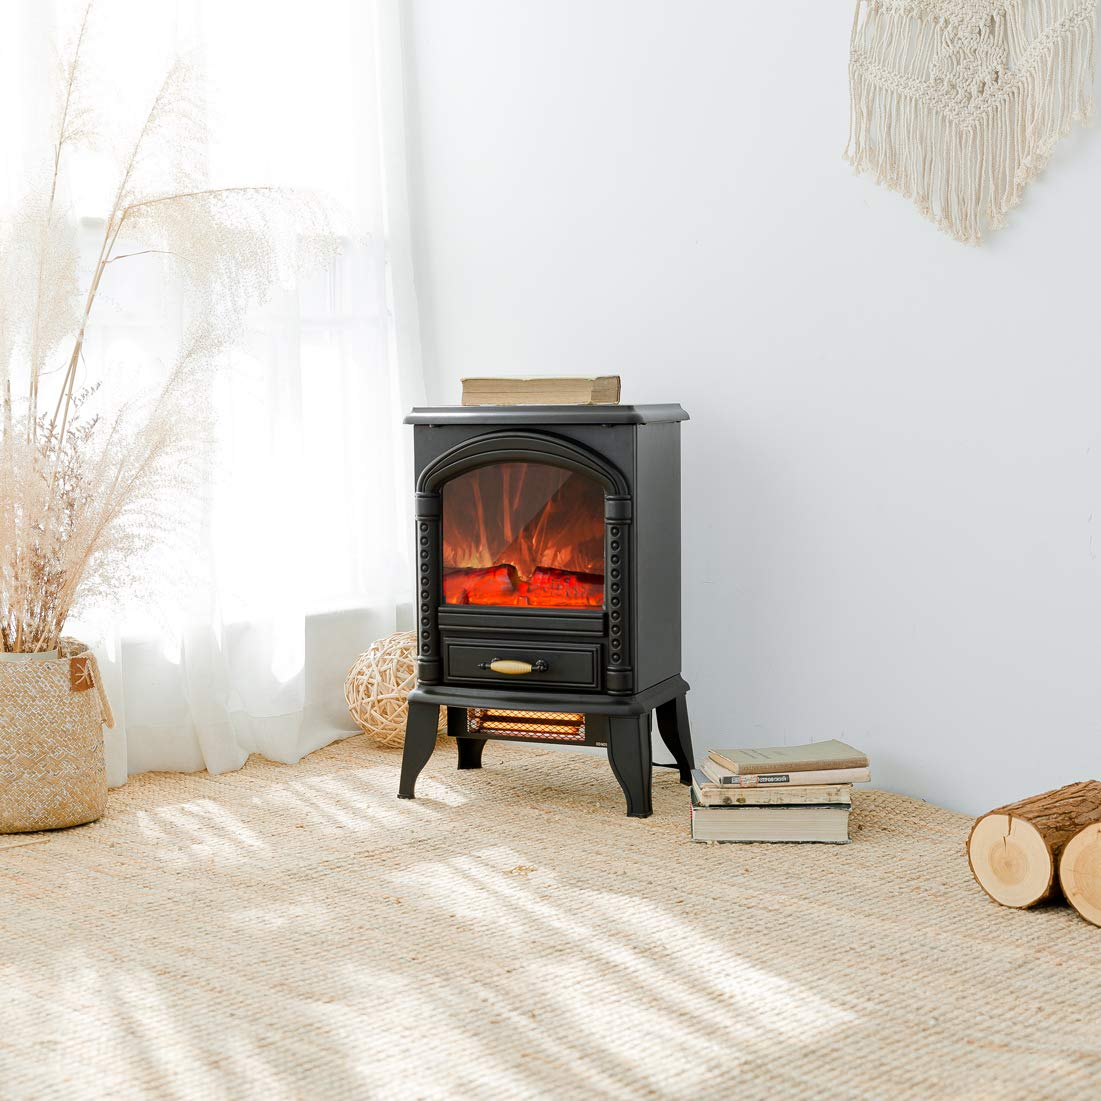 Best Portable Electric Fireplace Reviews 2020 Top 7 Choices